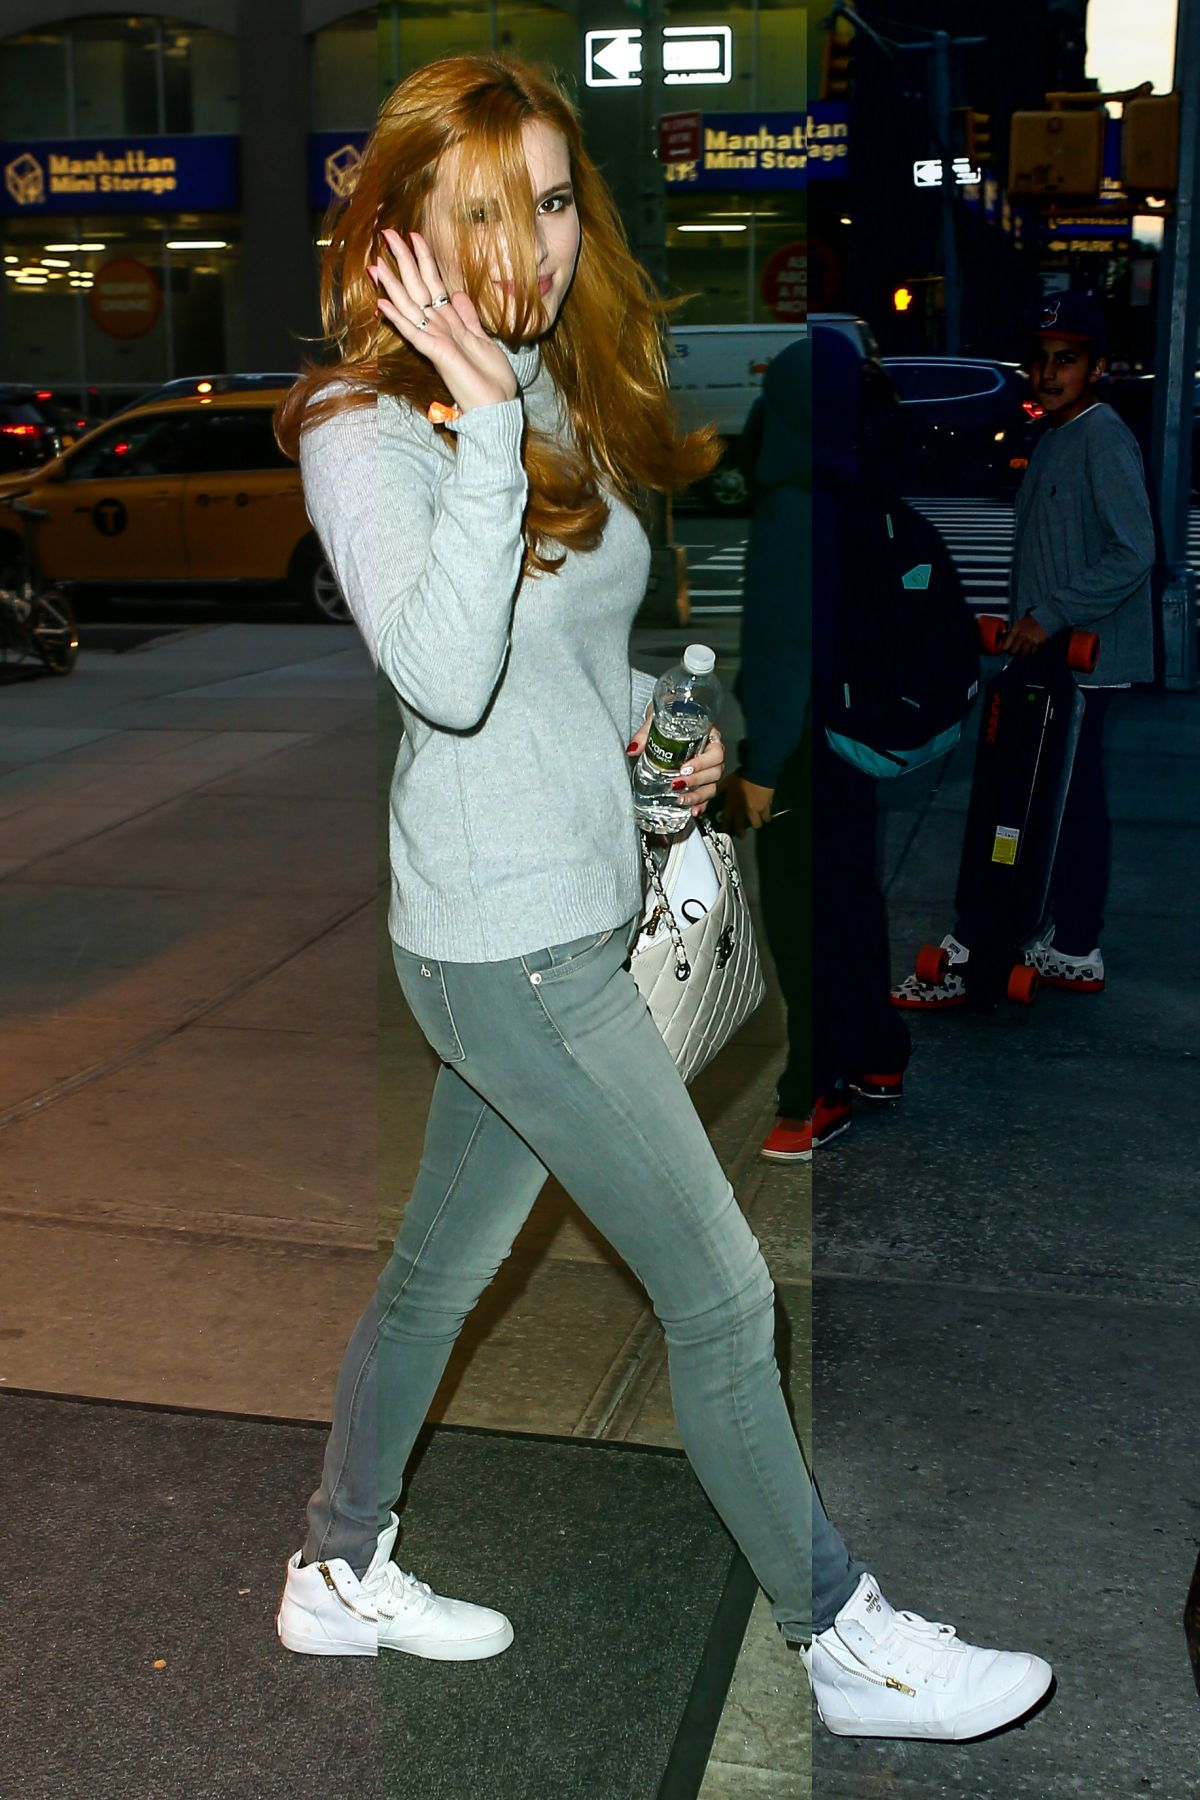 bella-thorne-out-and-about-in-new-york-12-16-2015_9